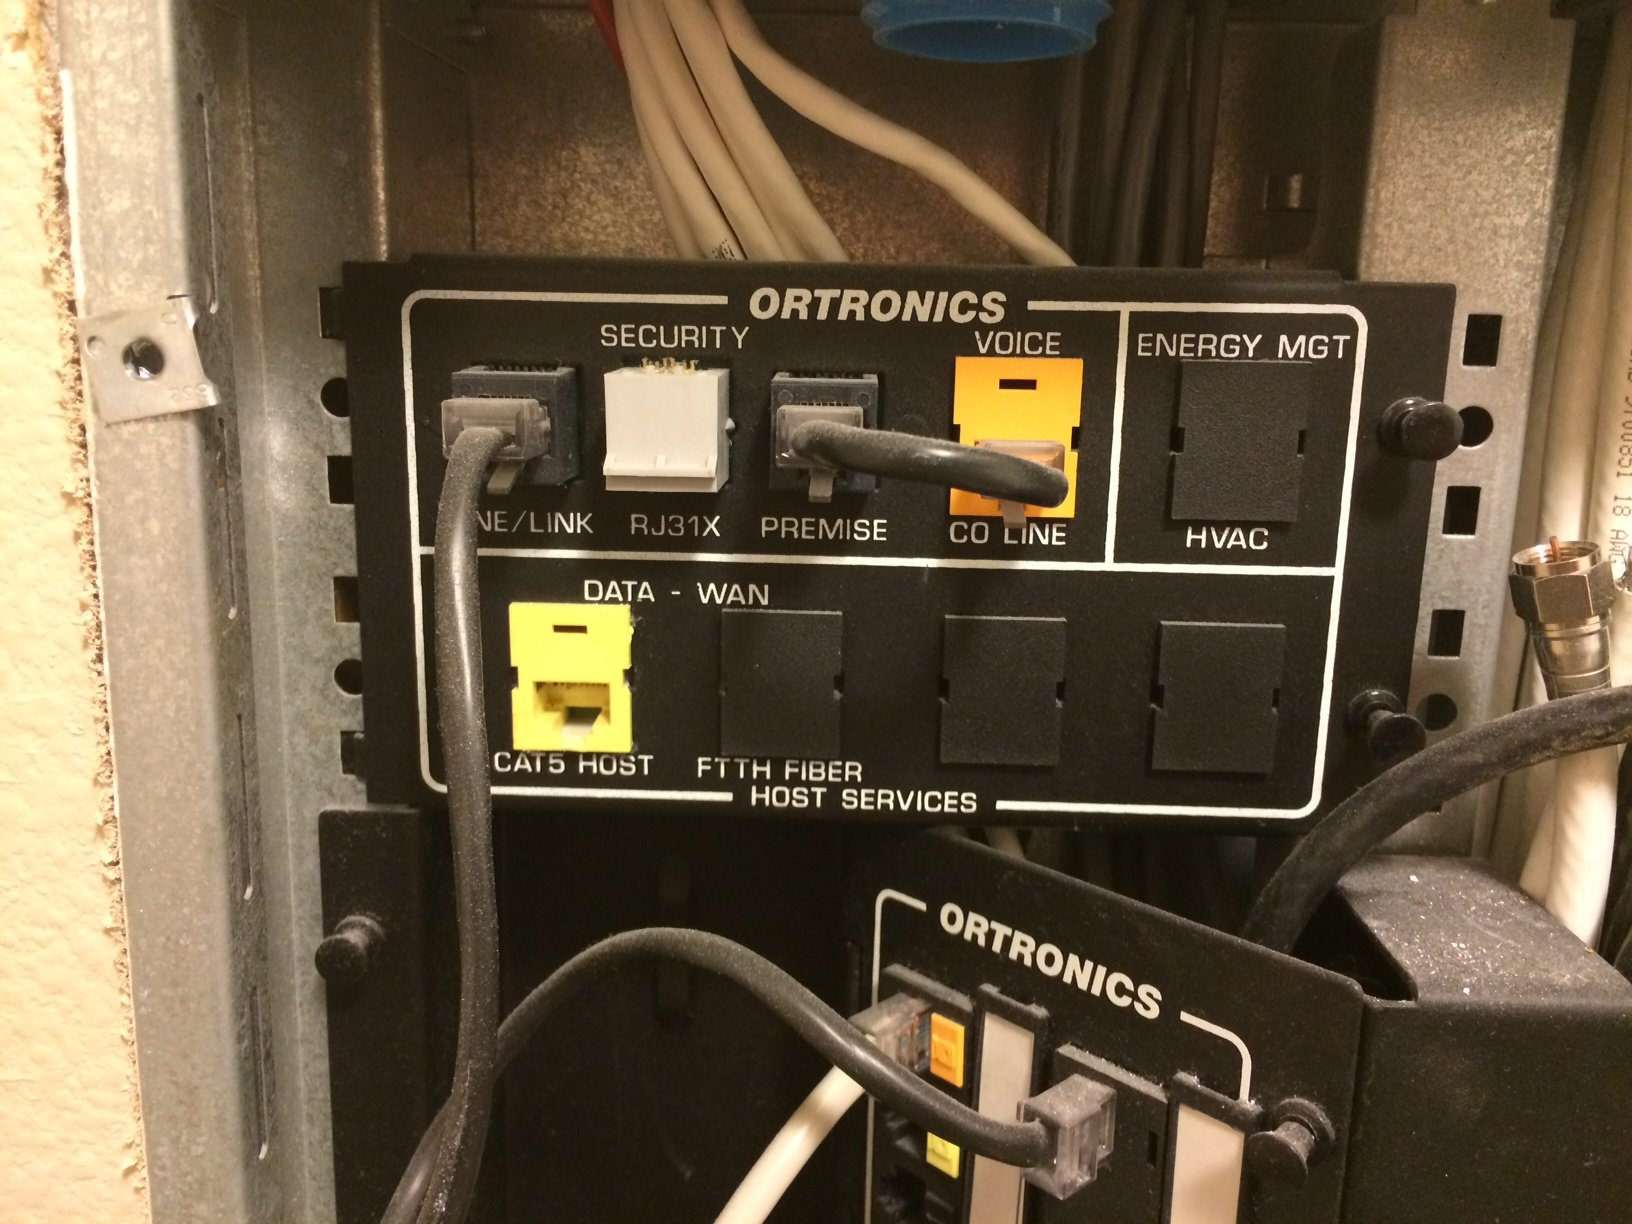 How Does Pre Wired Ethernet Work Page 3 Avs Forum Home Wiring House Patch Panel In The Laundry Room On Second Floor There Is A Junction Box That Has These Components Photos Are Ordered From Top Of To Bottom